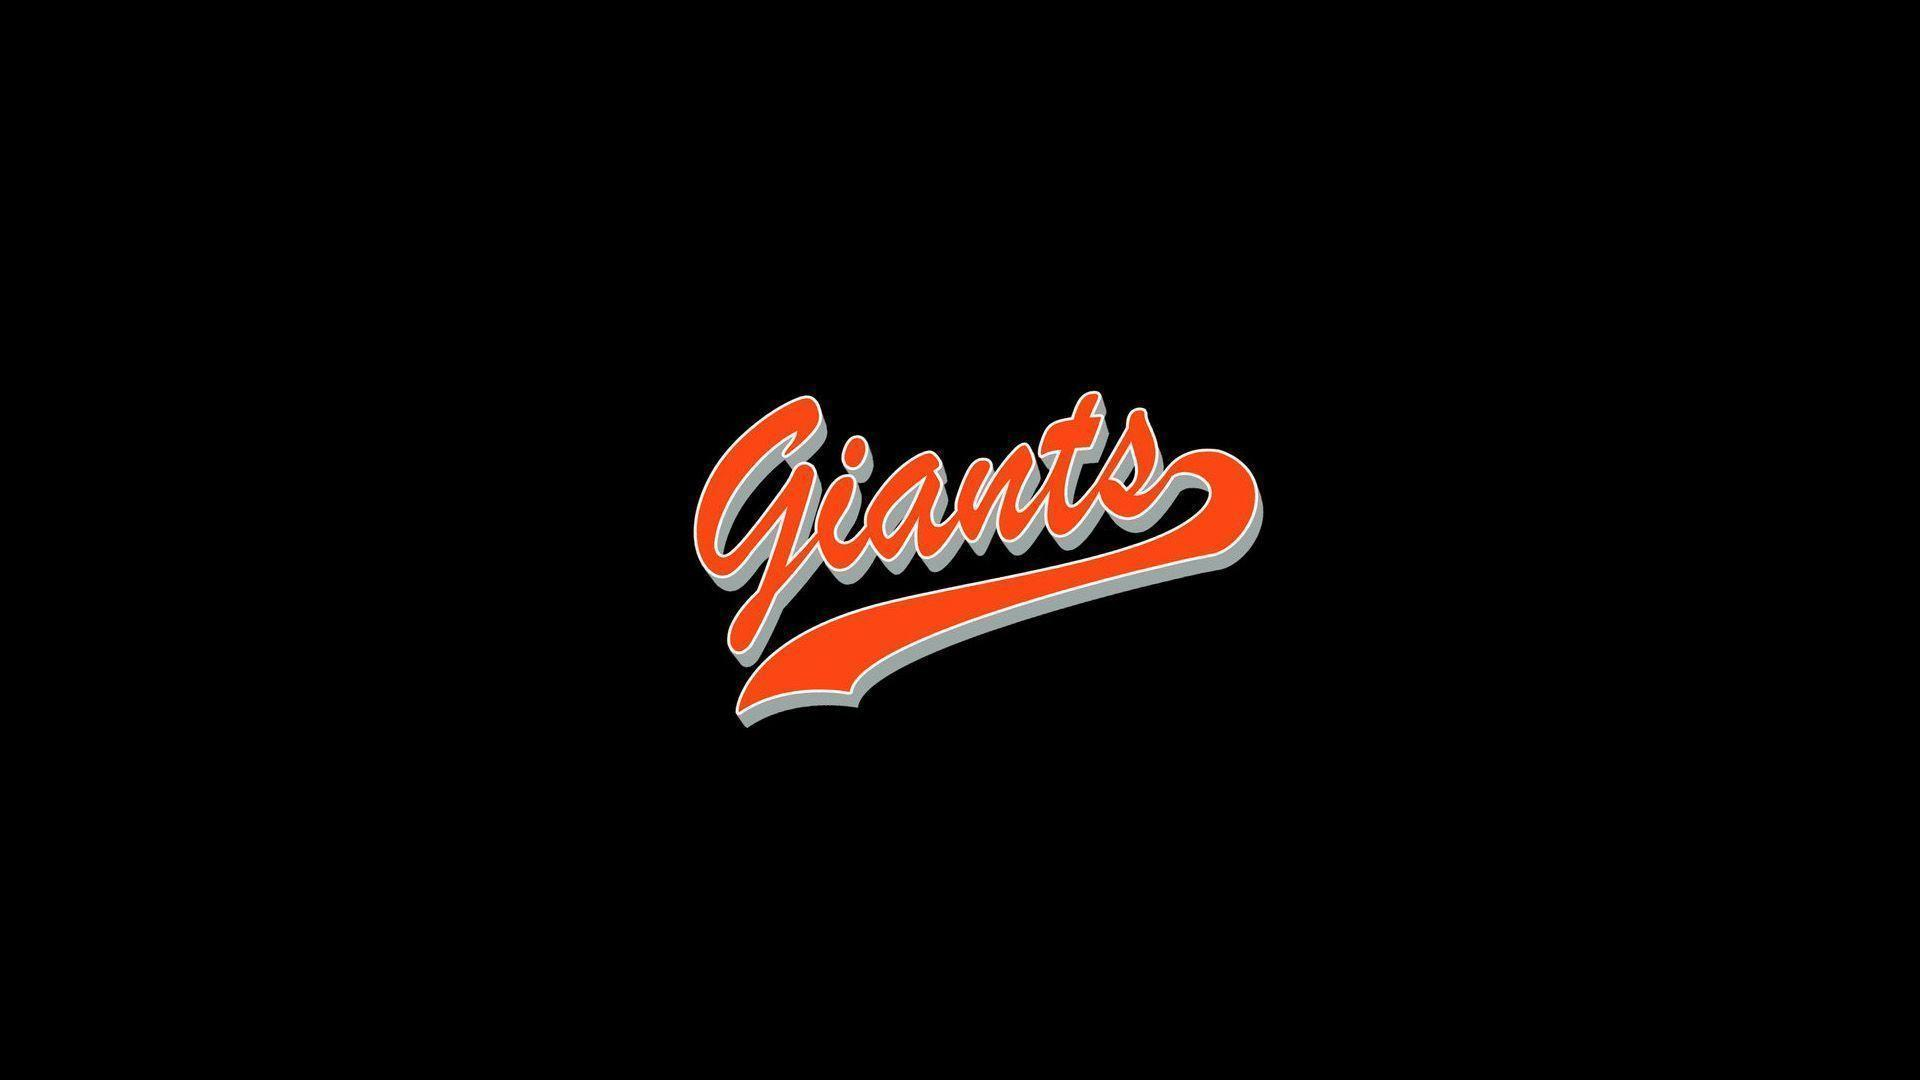 san francisco giants wallpaper android